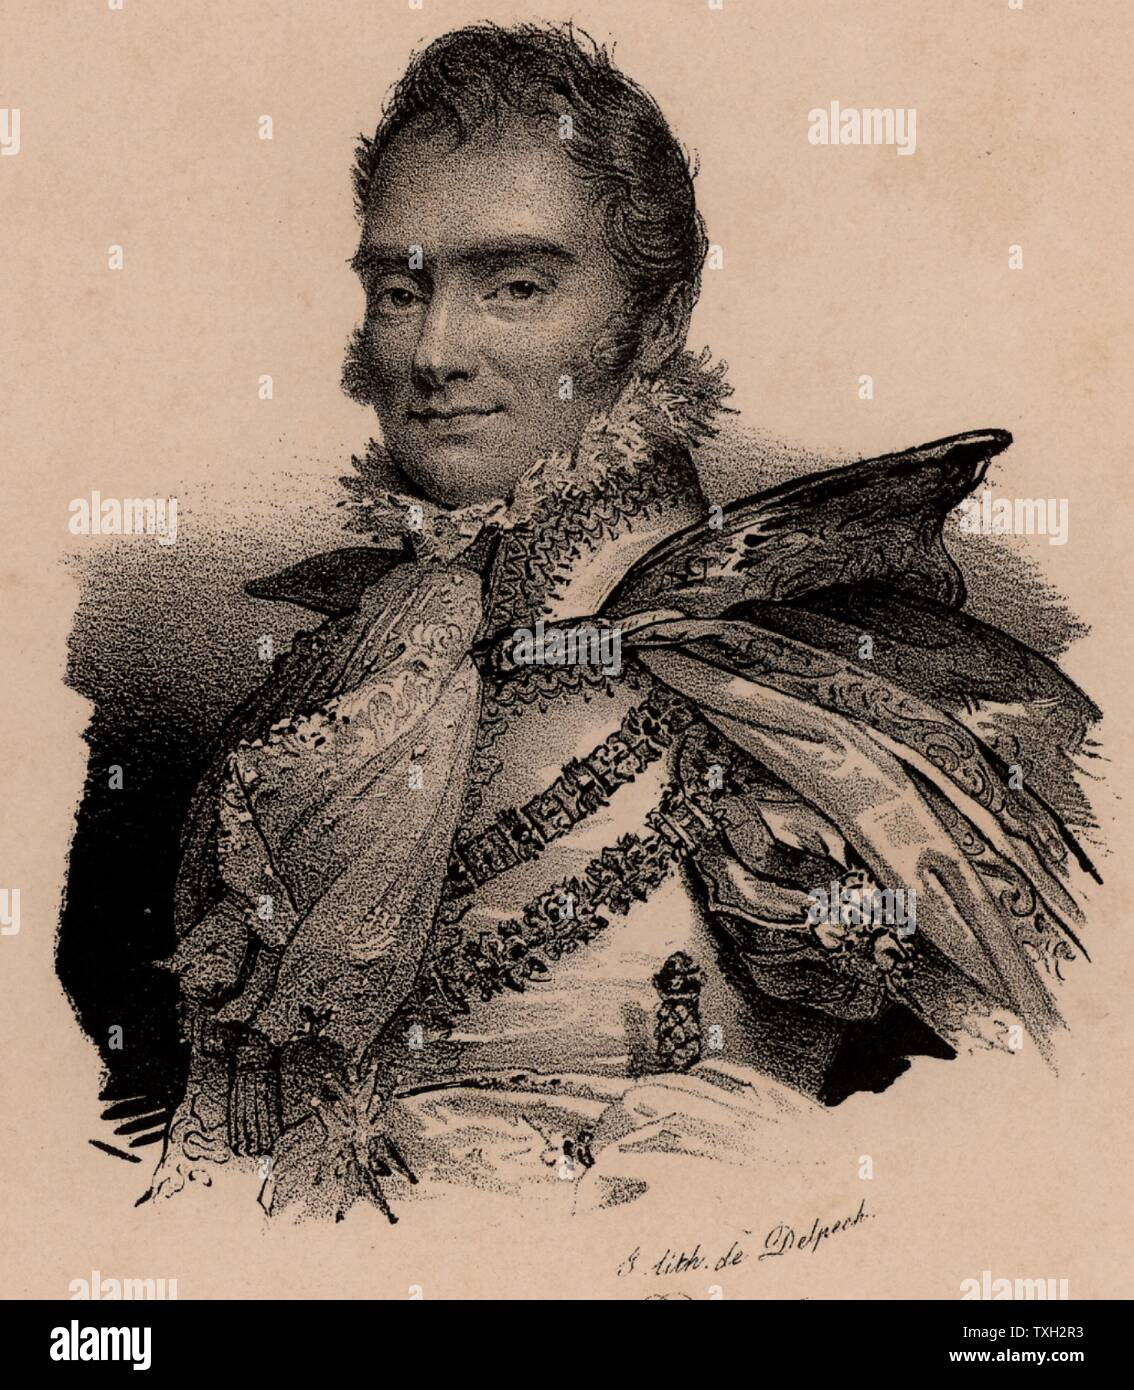 Charles Ferdinand, Duc de Berry (1778-1820); French aristocrat; second son of Charles X of France; assassinated by Bonapartist fanatic. Lithograph c1830 - Stock Image